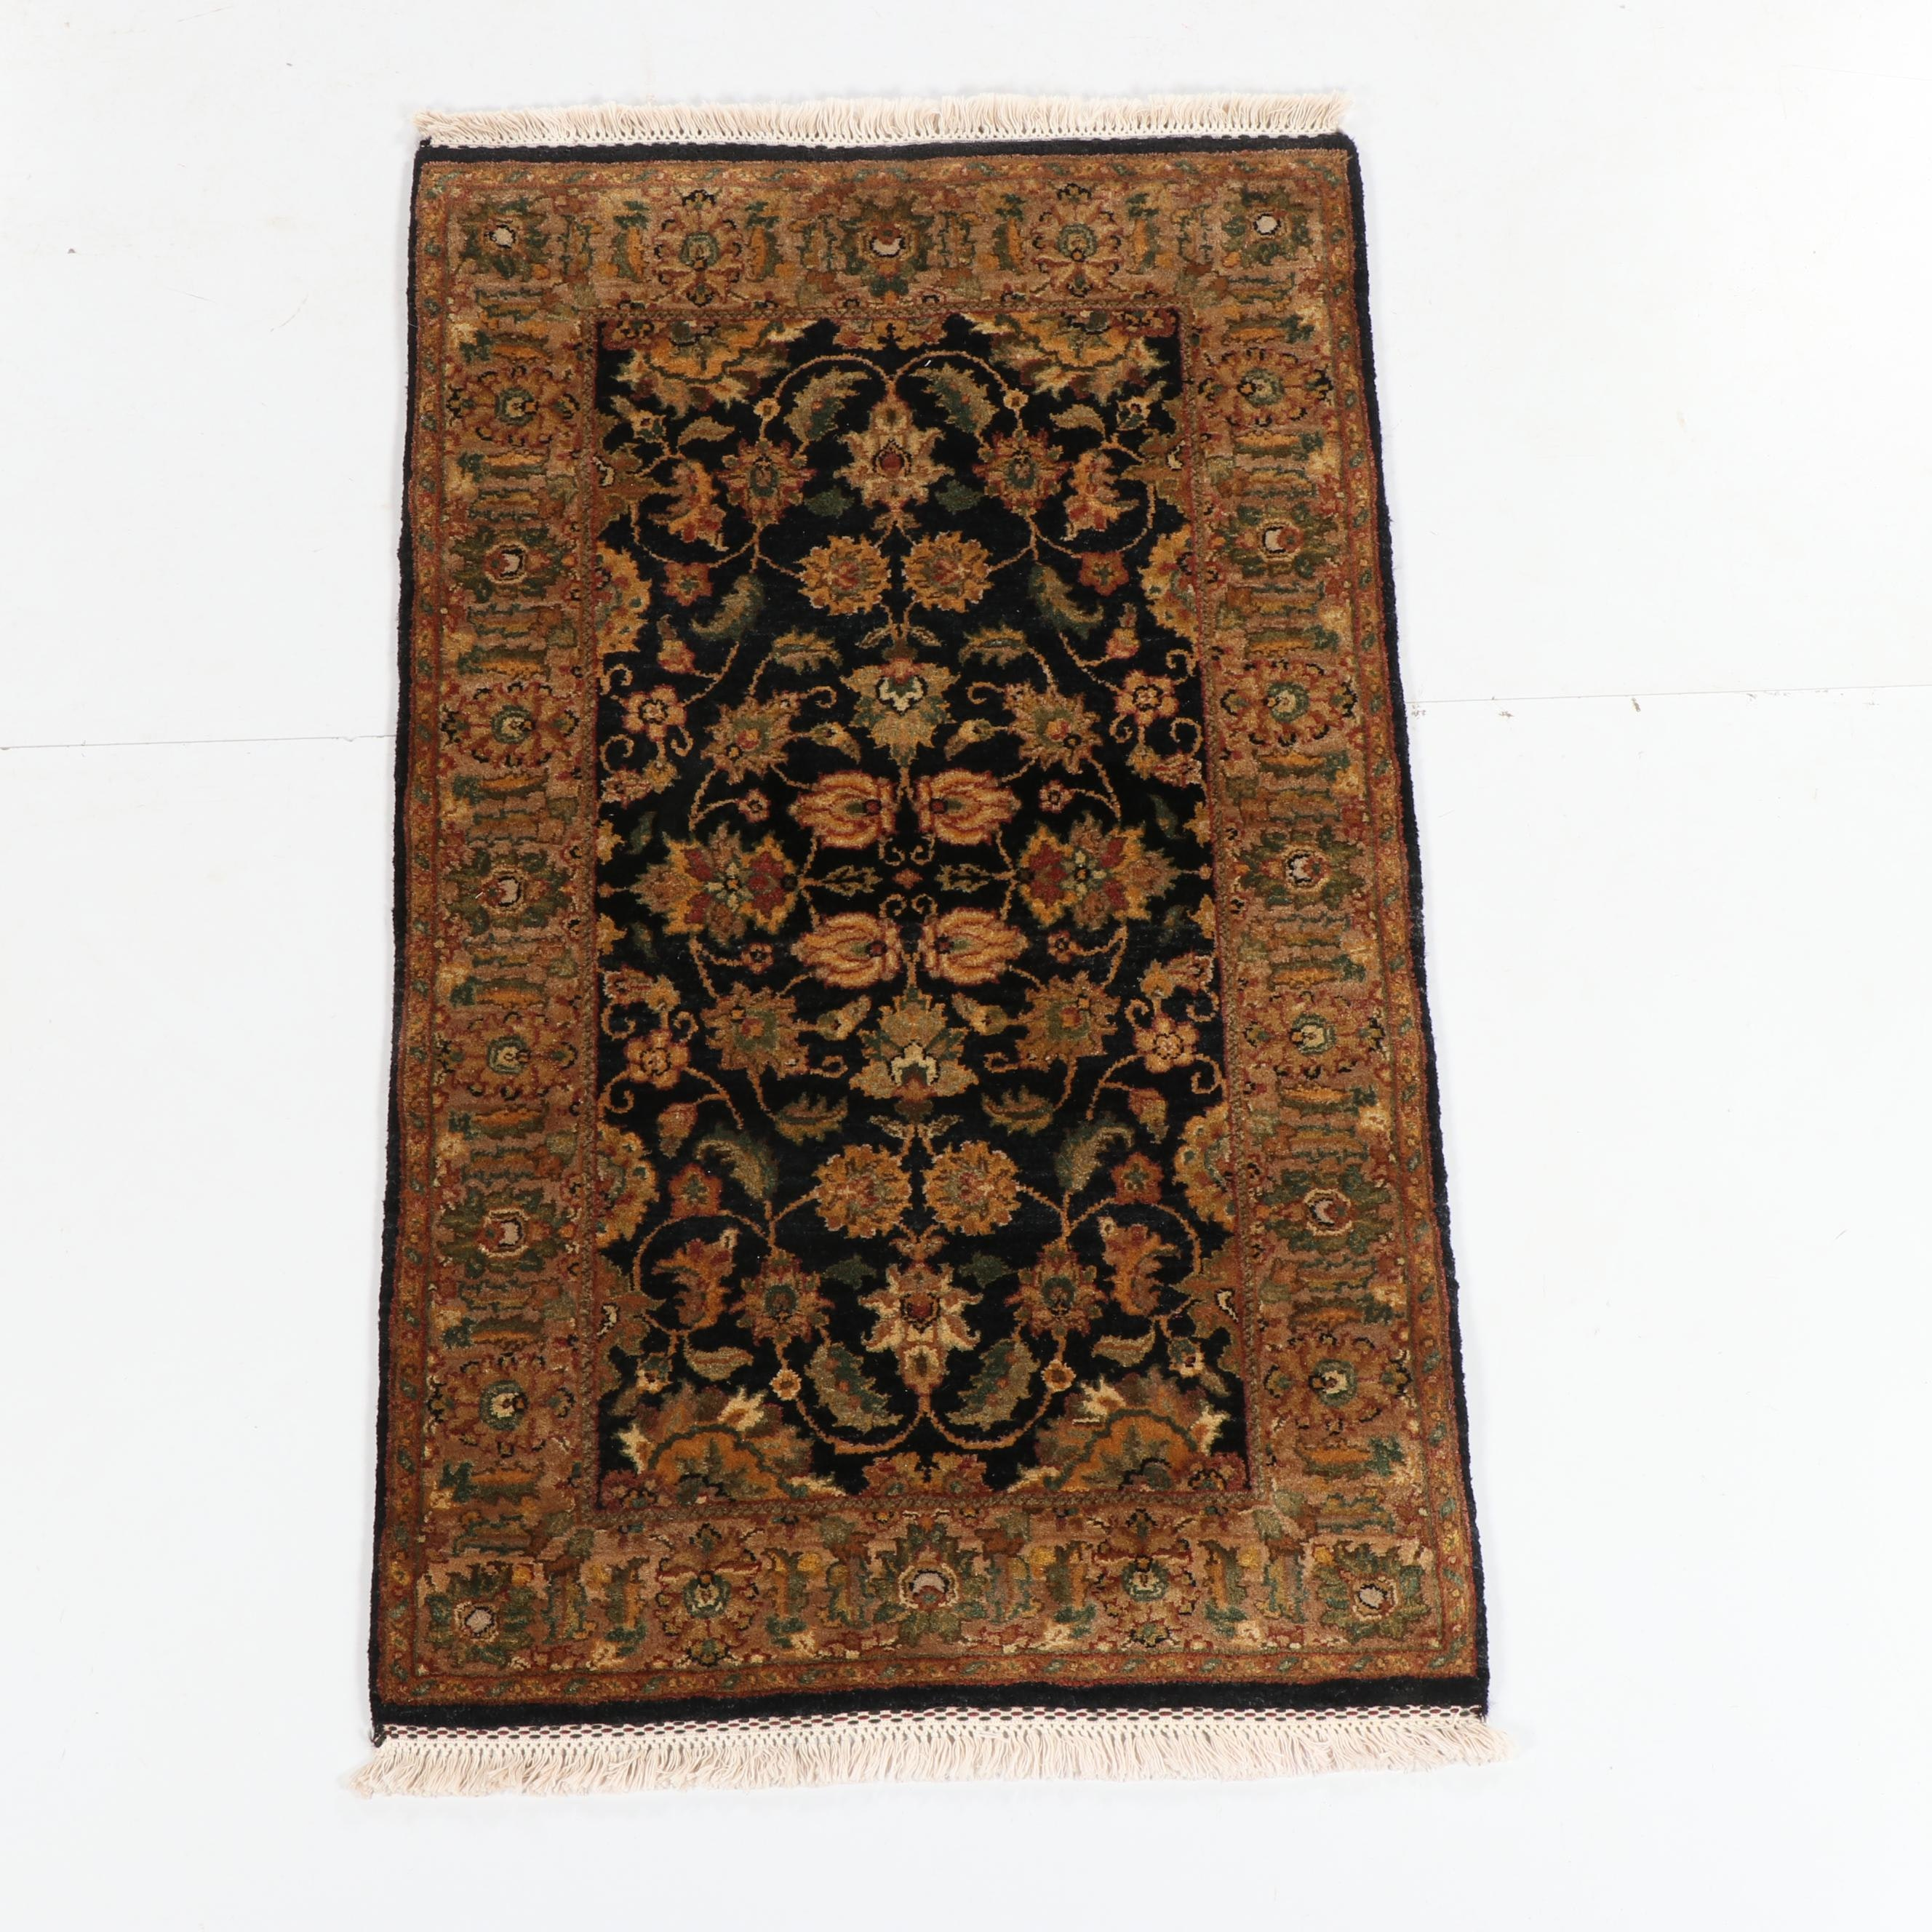 Hand-Knotted Indian Floral Wool Rug